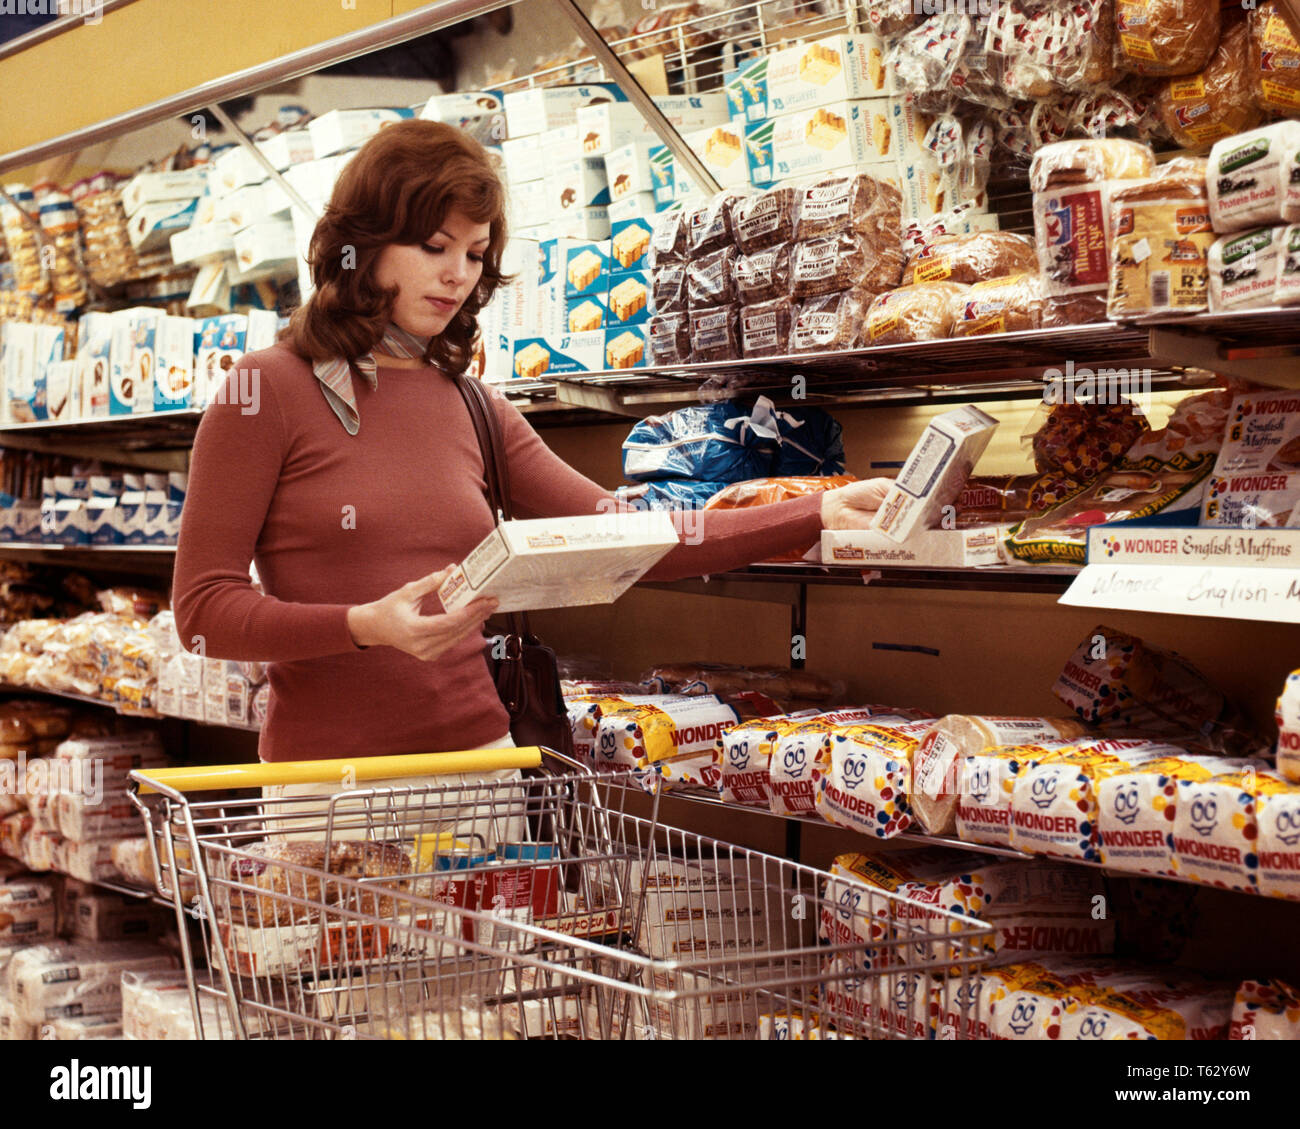 1970s YOUNG WOMAN HOUSEWIFE FOOD SHOPPING COMPARING TWO ITEMS GROCERY STORE BAKERY DEPARTMENT CART - ks14455 KRU001 HARS GROWNUP HEALTHINESS HOME LIFE HALF-LENGTH LADIES PERSONS GROWN-UP SHOPPER BRUNETTE HOMEMAKER WONDER HOMEMAKERS ITEMS CUSTOMER SERVICE CHOICE HOUSEWIVES SELECTION CONCEPTUAL BAKERY DECIDING NOURISHMENT STYLISH COMPARE YOUNG ADULT WOMAN YOUNGSTER CAUCASIAN ETHNICITY COMPARING OLD FASHIONED SELECTING - Stock Image